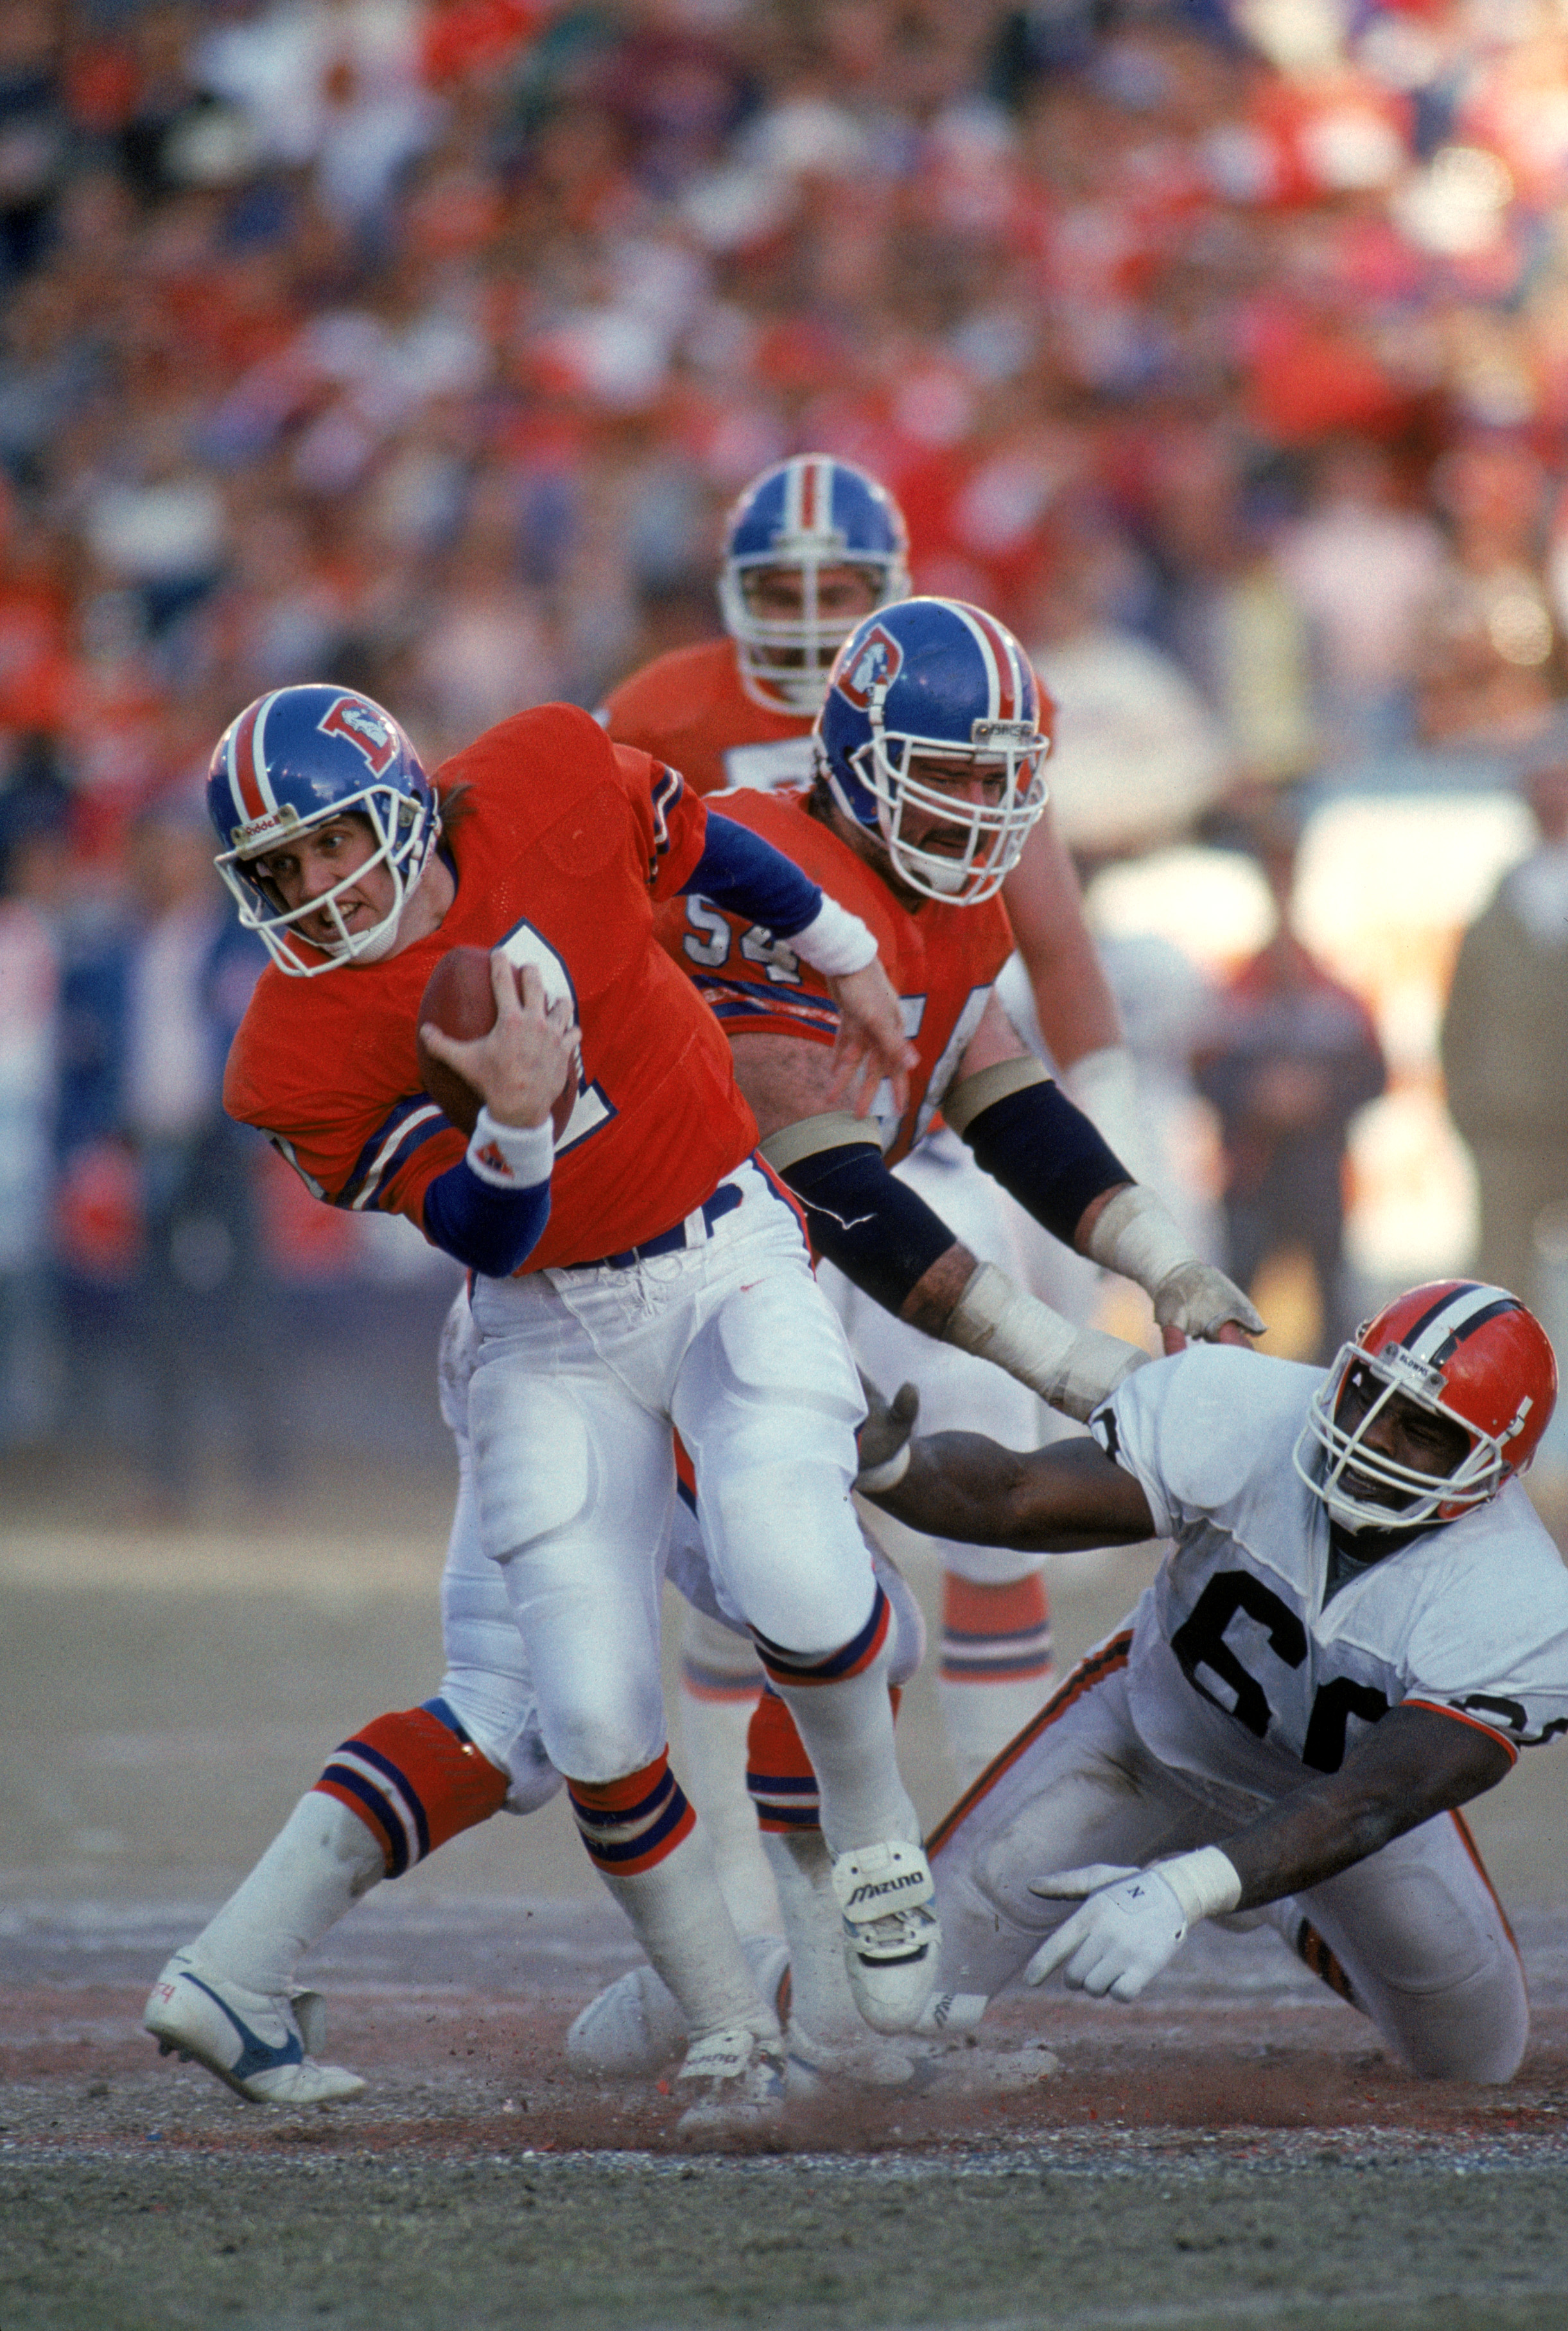 DENVER - JANUARY 17:  Quarterback John Elway #7 of the Denver Broncos breaks a tackle during the 1987 AFC Championship game against the Cleveland Browns at Mile High Stadium on January 17, 1988 in Denver, Colorado.  The Broncos won 38-33.  (Photo by Georg